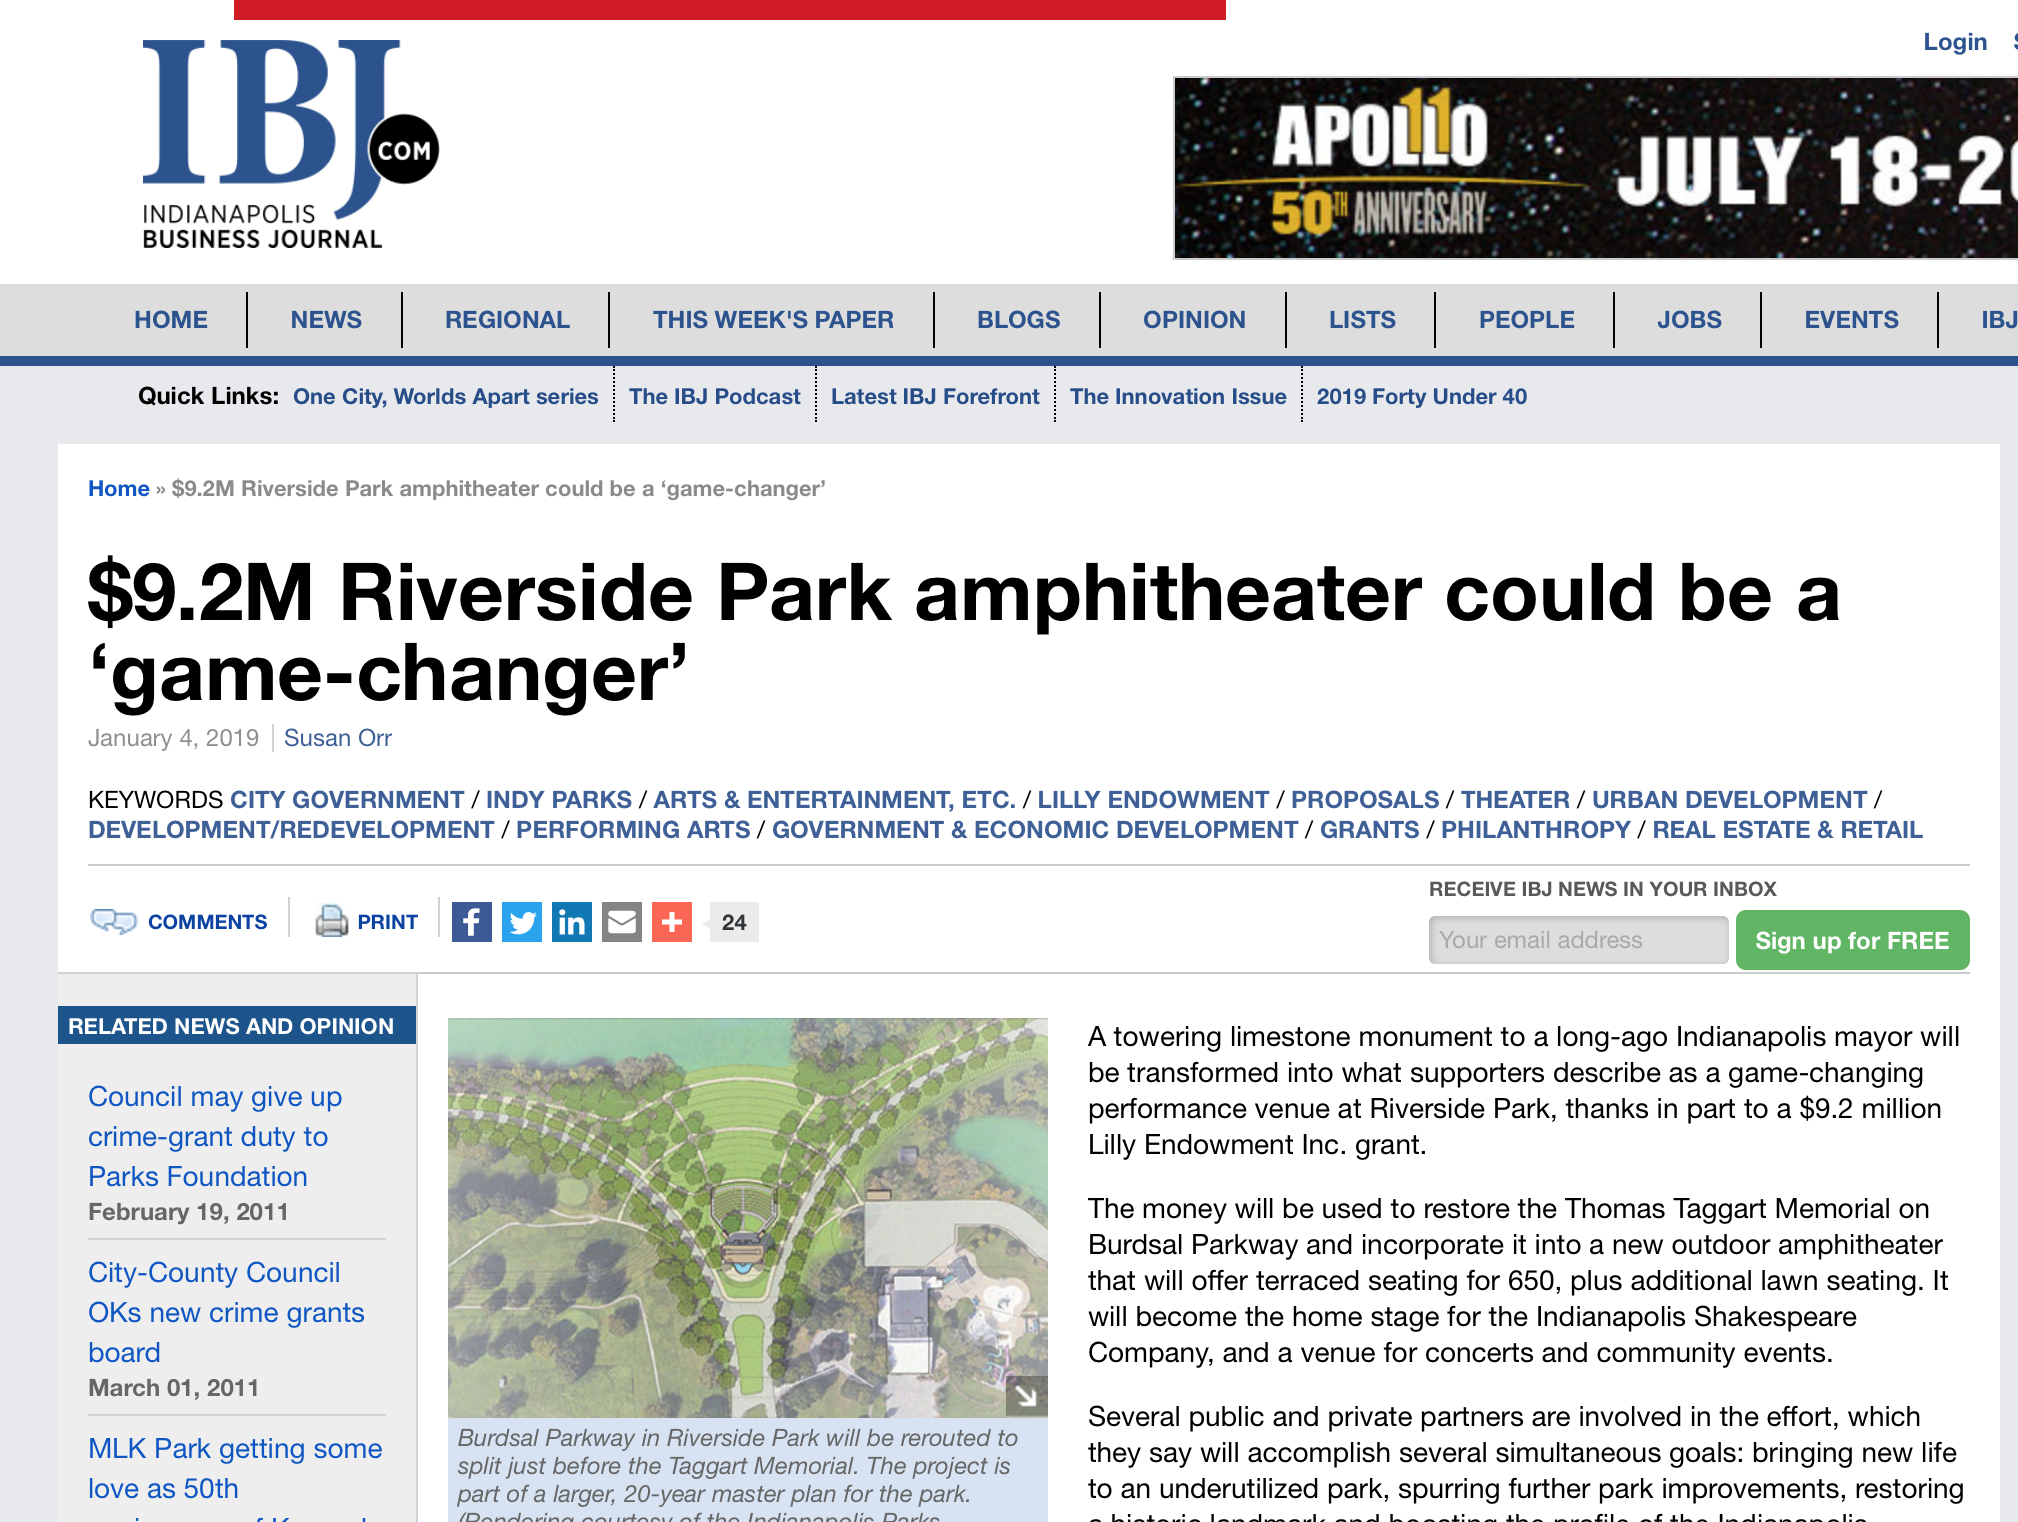 $9.2M Riverside Park amphitheater could be a 'game-changer' - An article by IBJ's Susan Orr about the renovations of the Taggart Memorial in Riverside Park and the organizations, including Indy Shakes, that are involved in the project. Click to read.